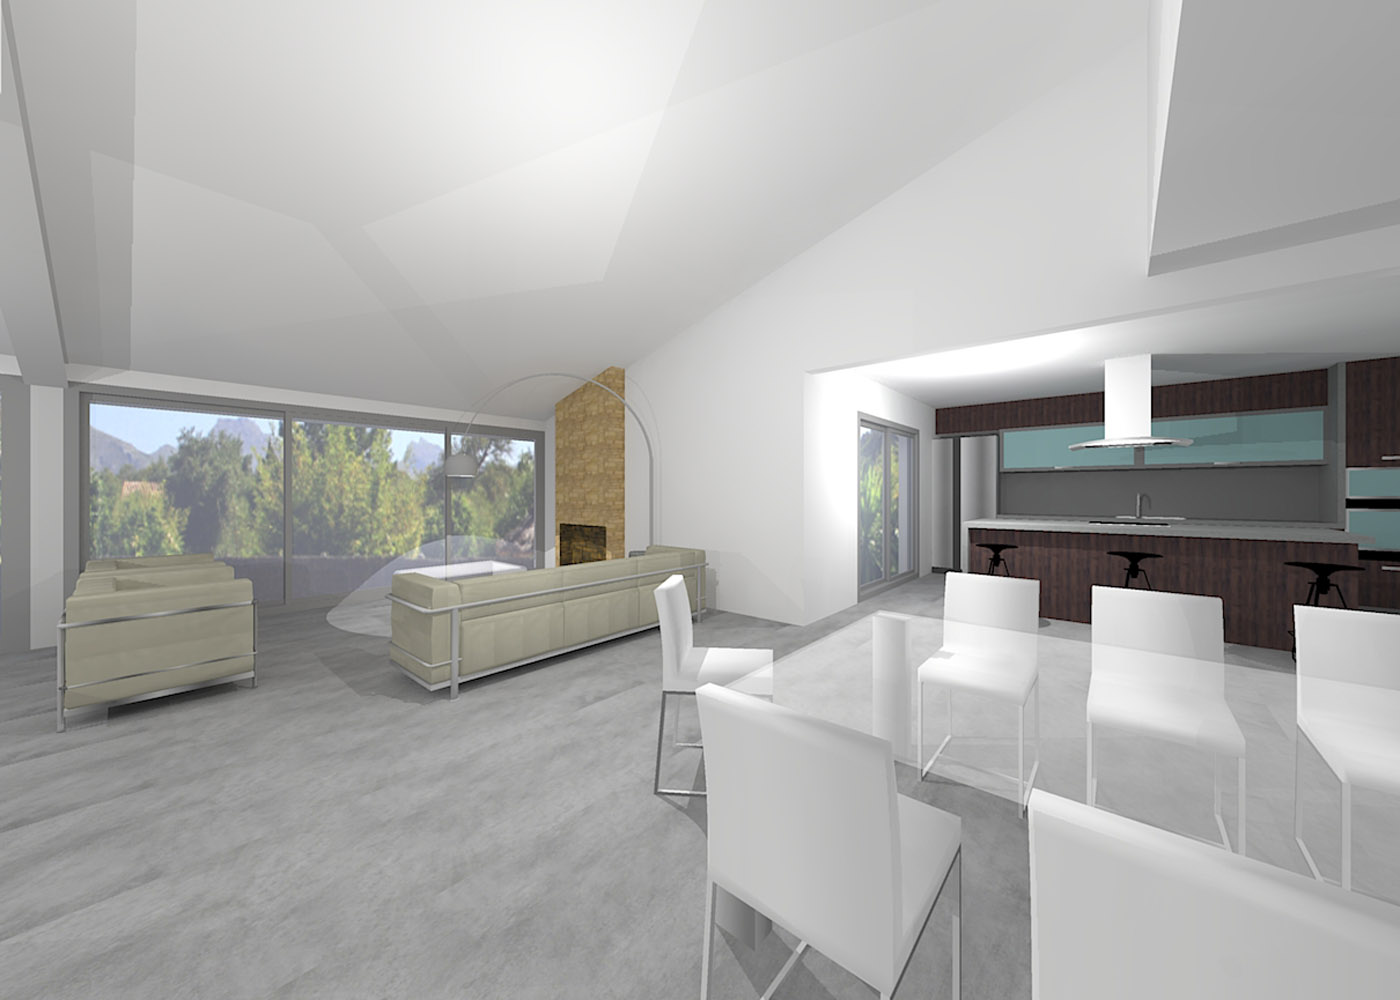 single-family-detached-house-rehabilitation-sant-pere-de-ribes-barcelona-05